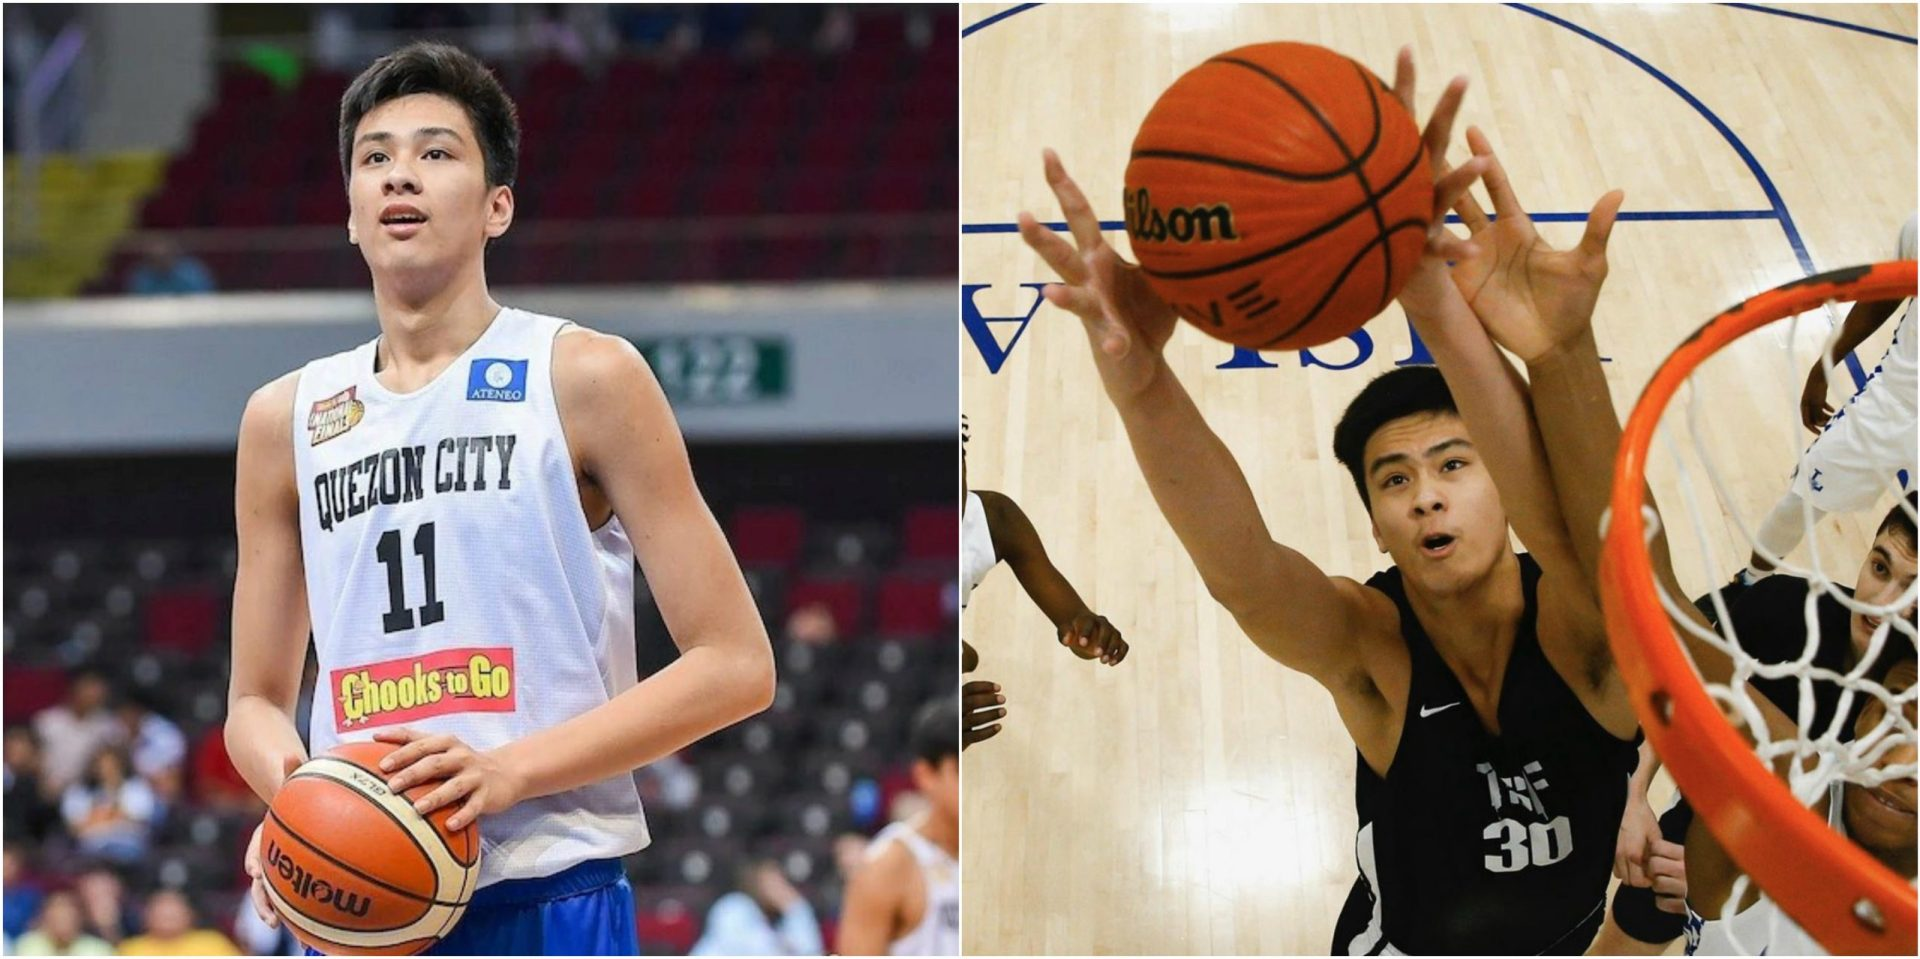 18-year-old Filipino NBA prospect Kai Sotto wishes to create basketball academy in Hamilton - THE SPORTS ROOM